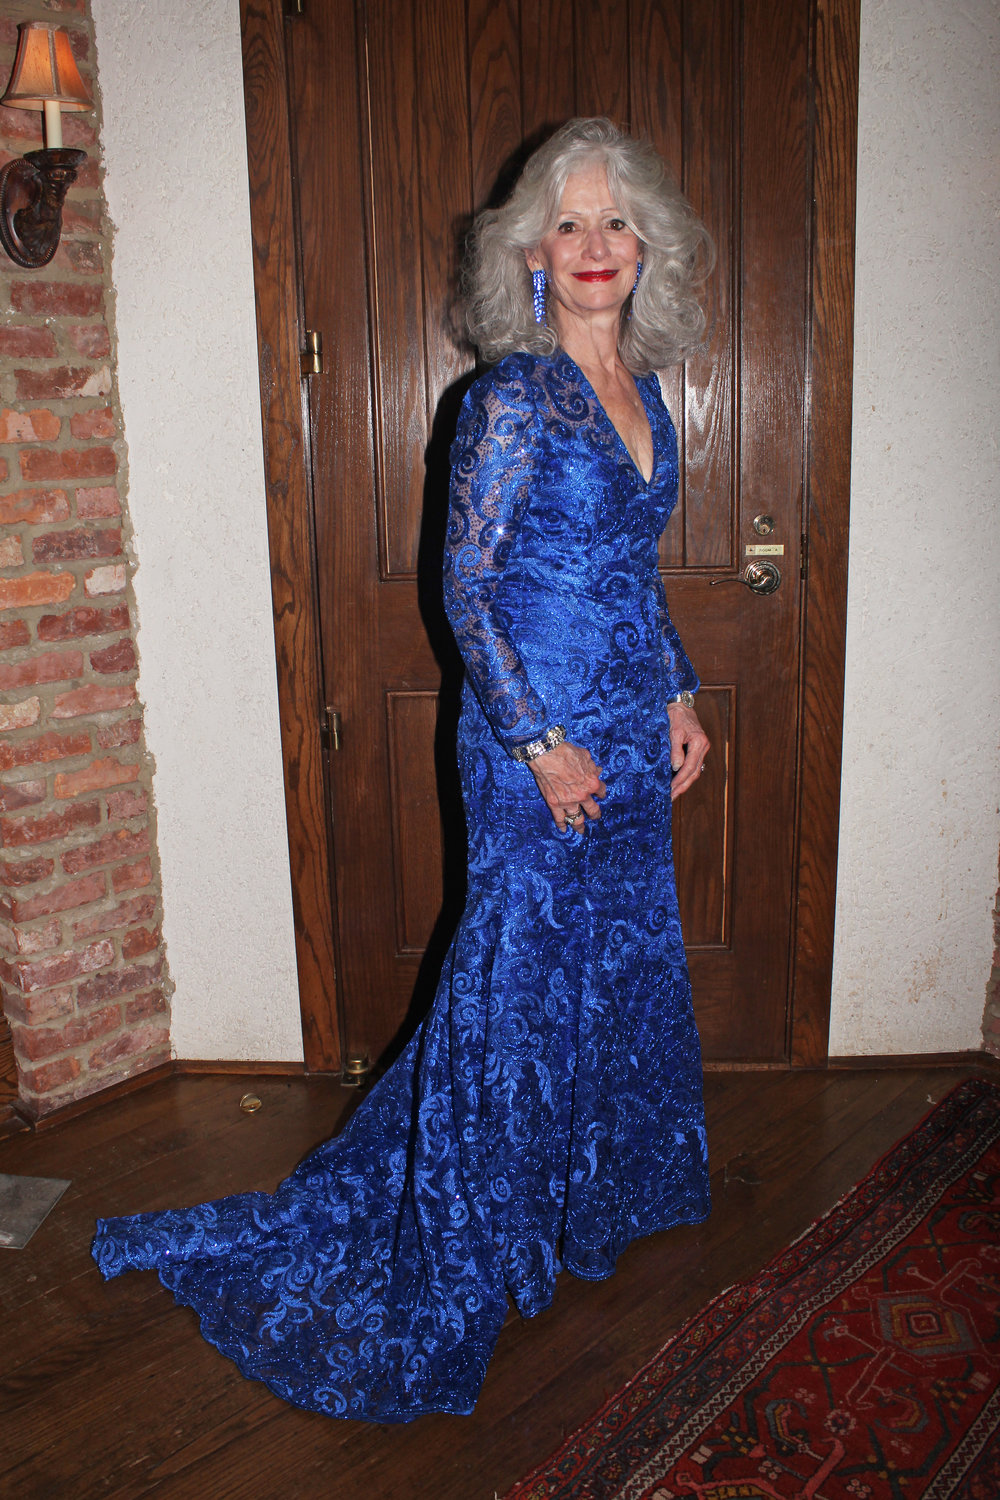 Board member Gail Brinn Wilkins in a custom Luis Machicao gown.